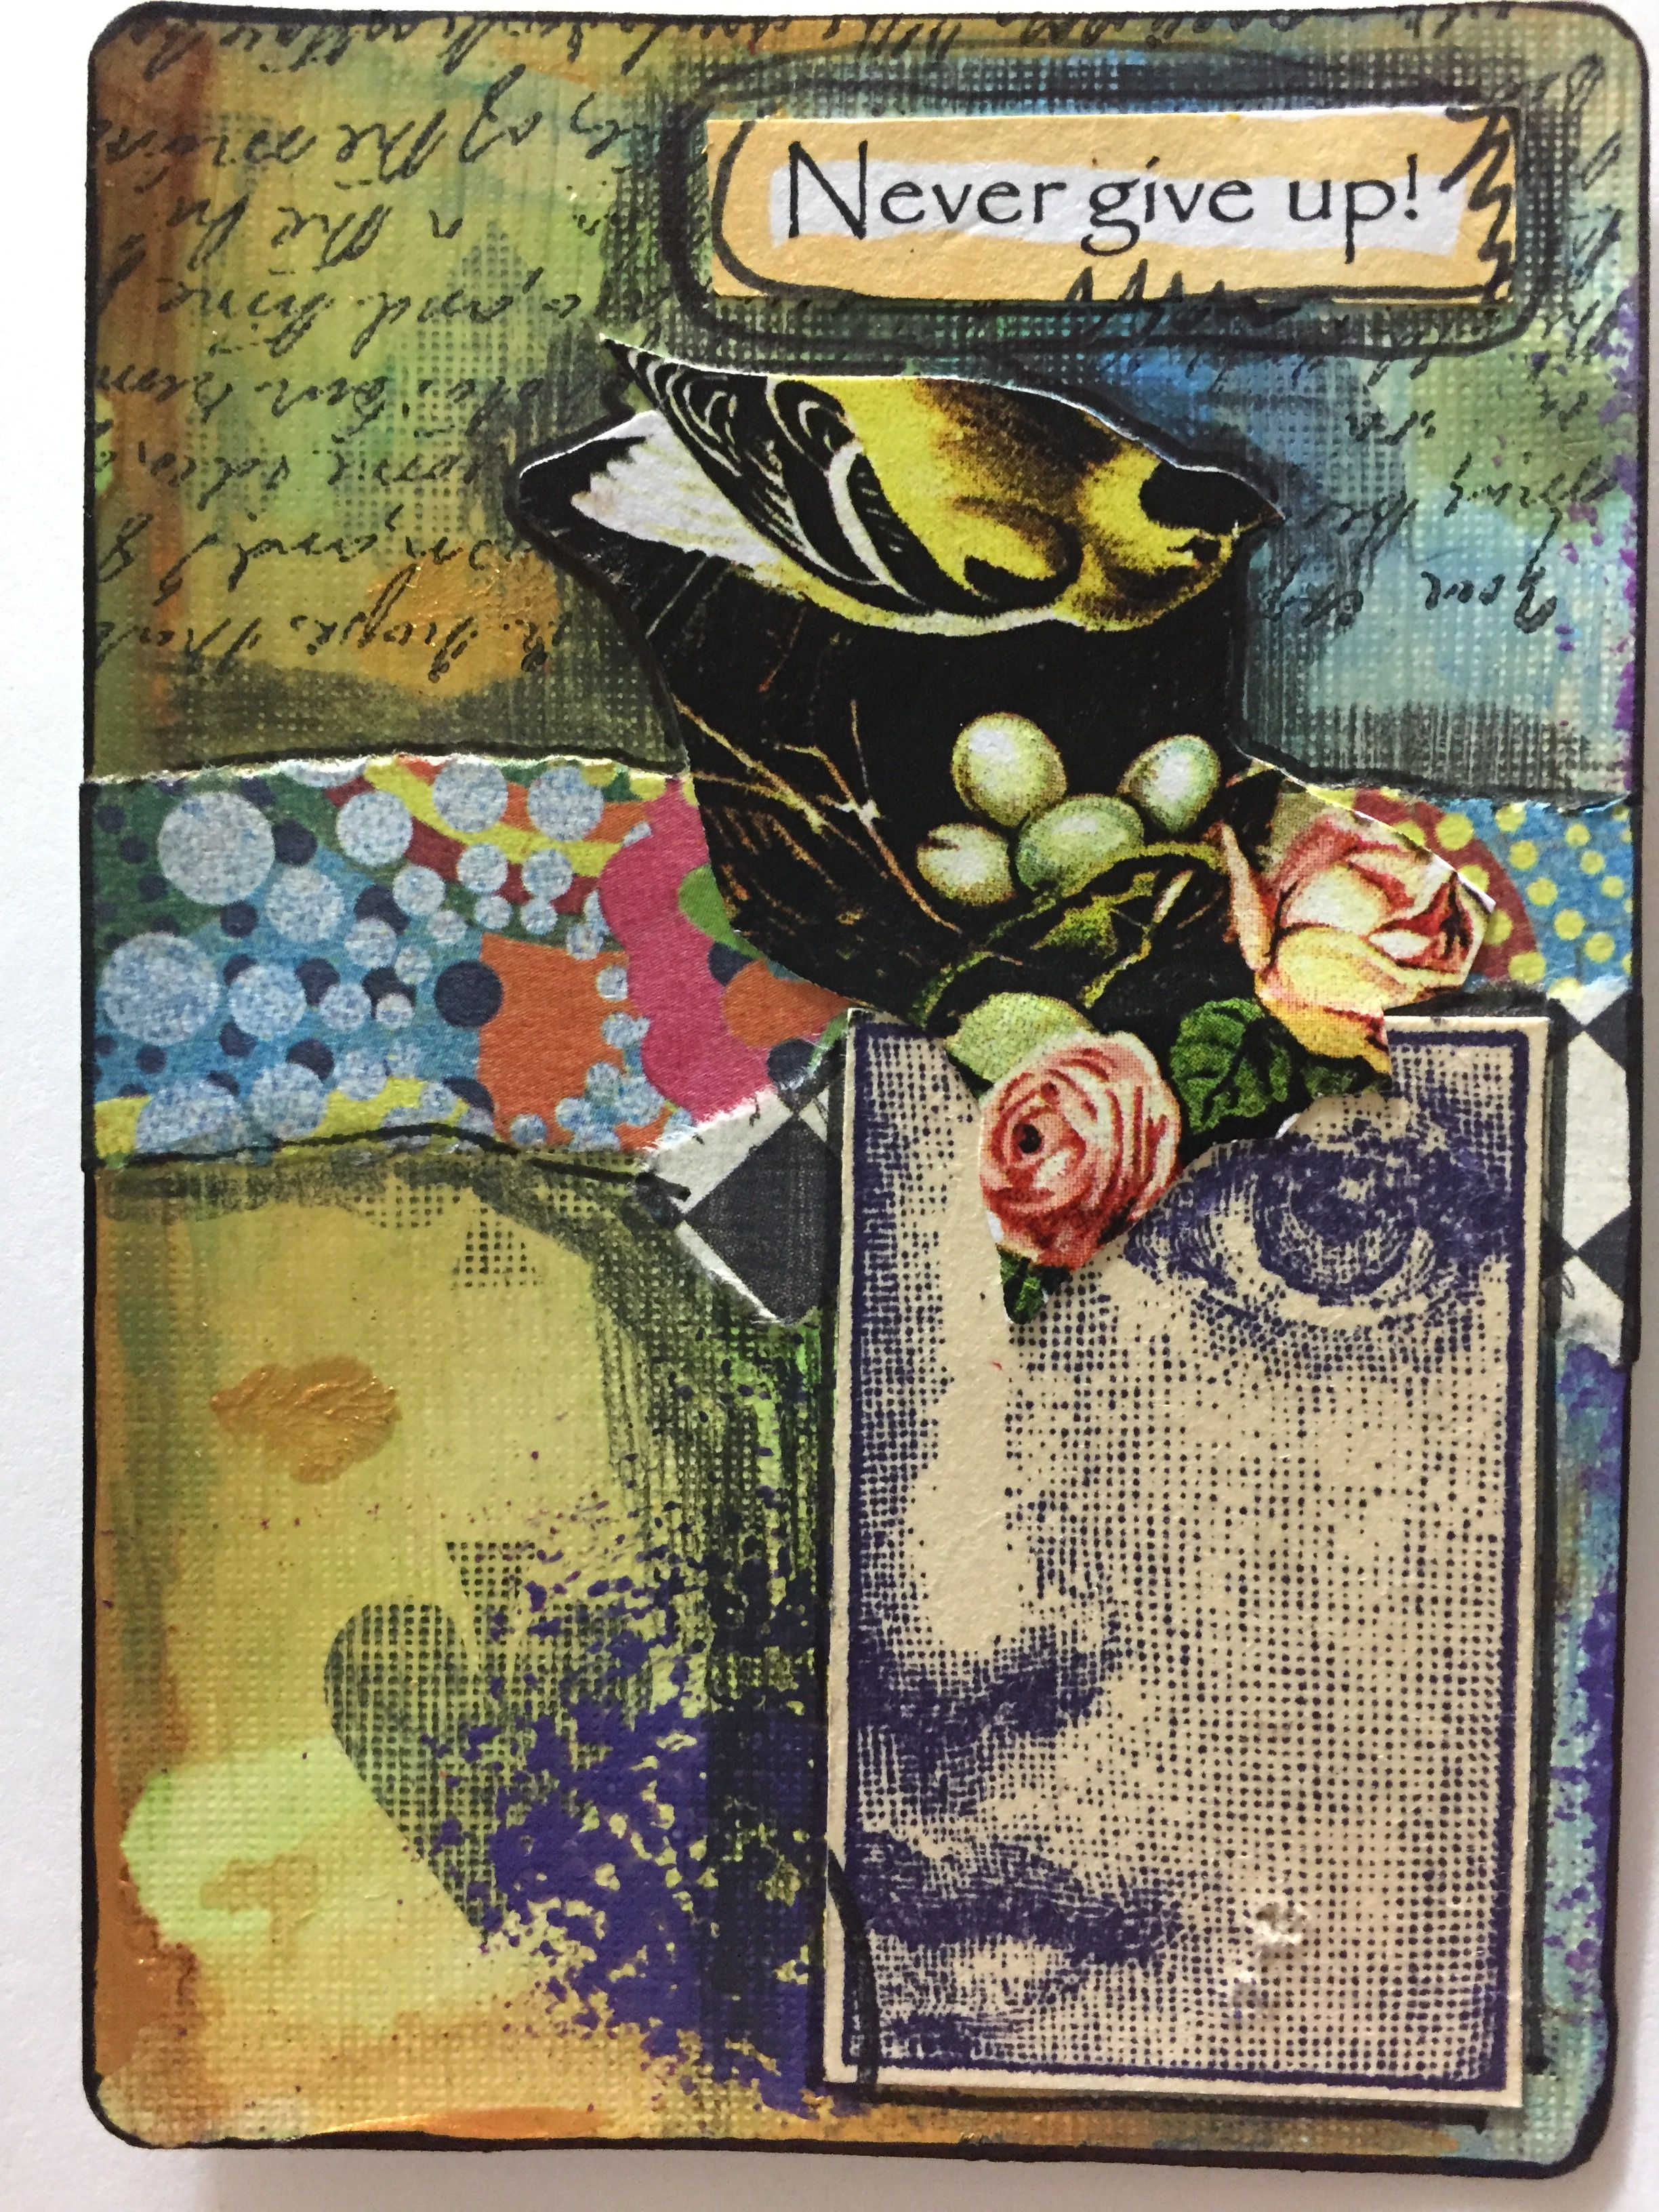 Atc by kim collister card art artist trading cards